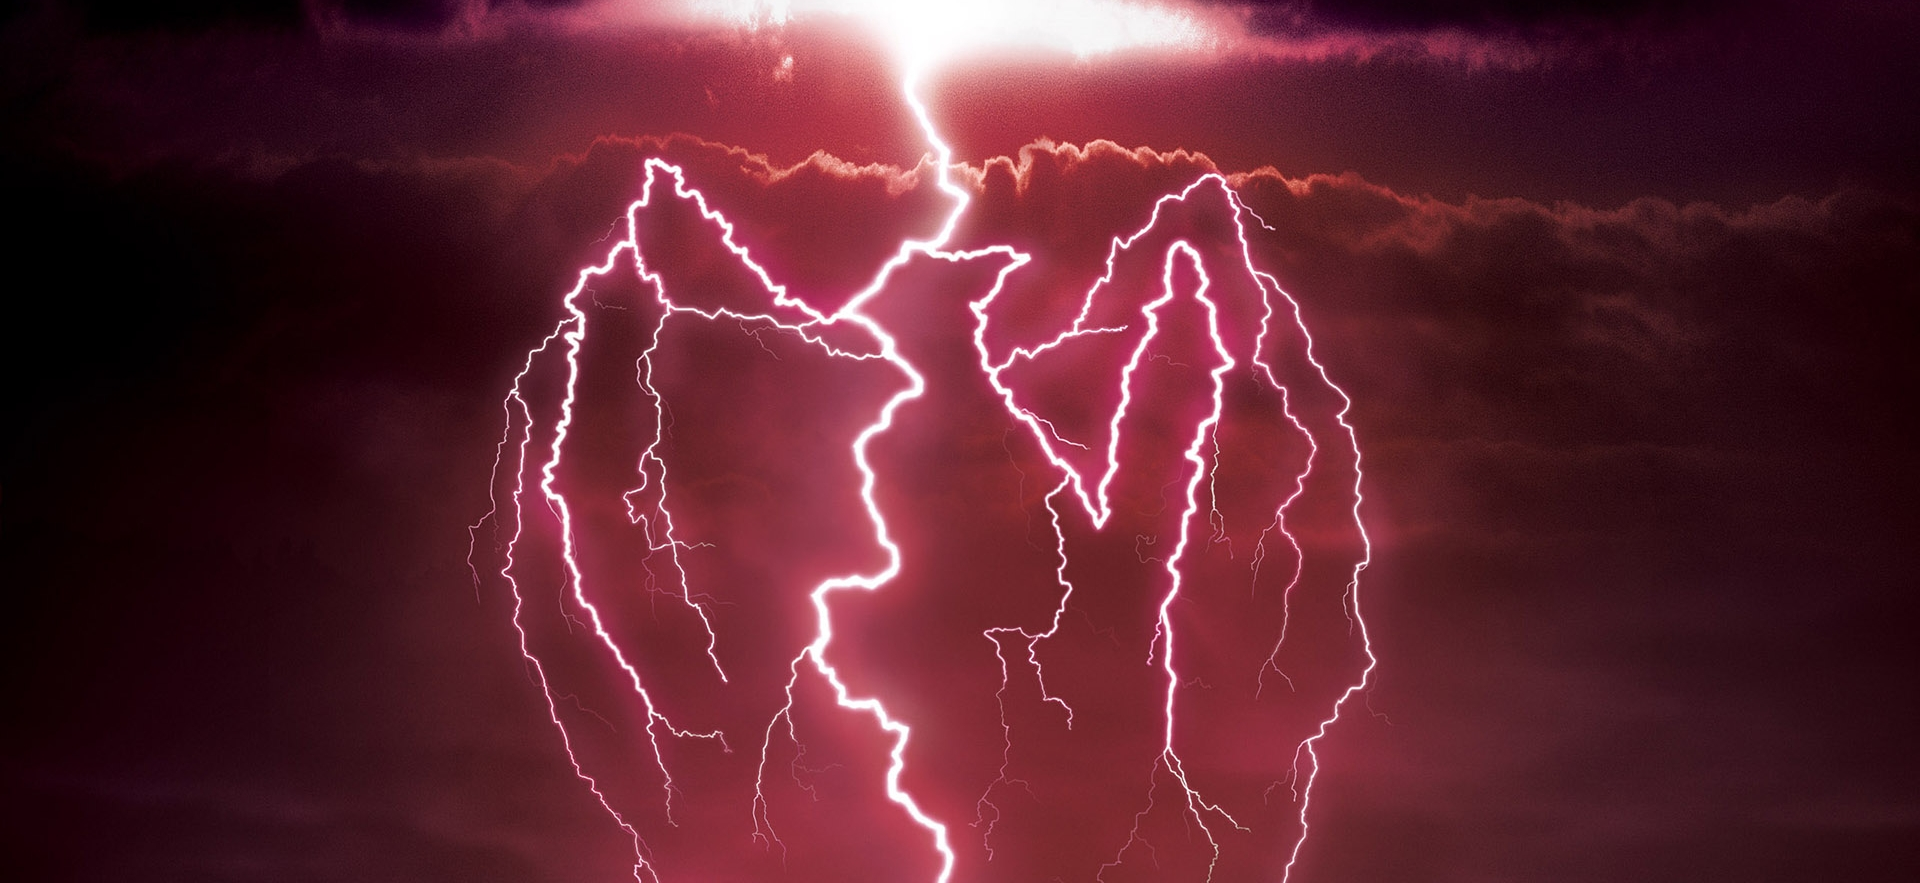 3D Bacardi Lightning Strike Advertisement Illustration Thumbnail